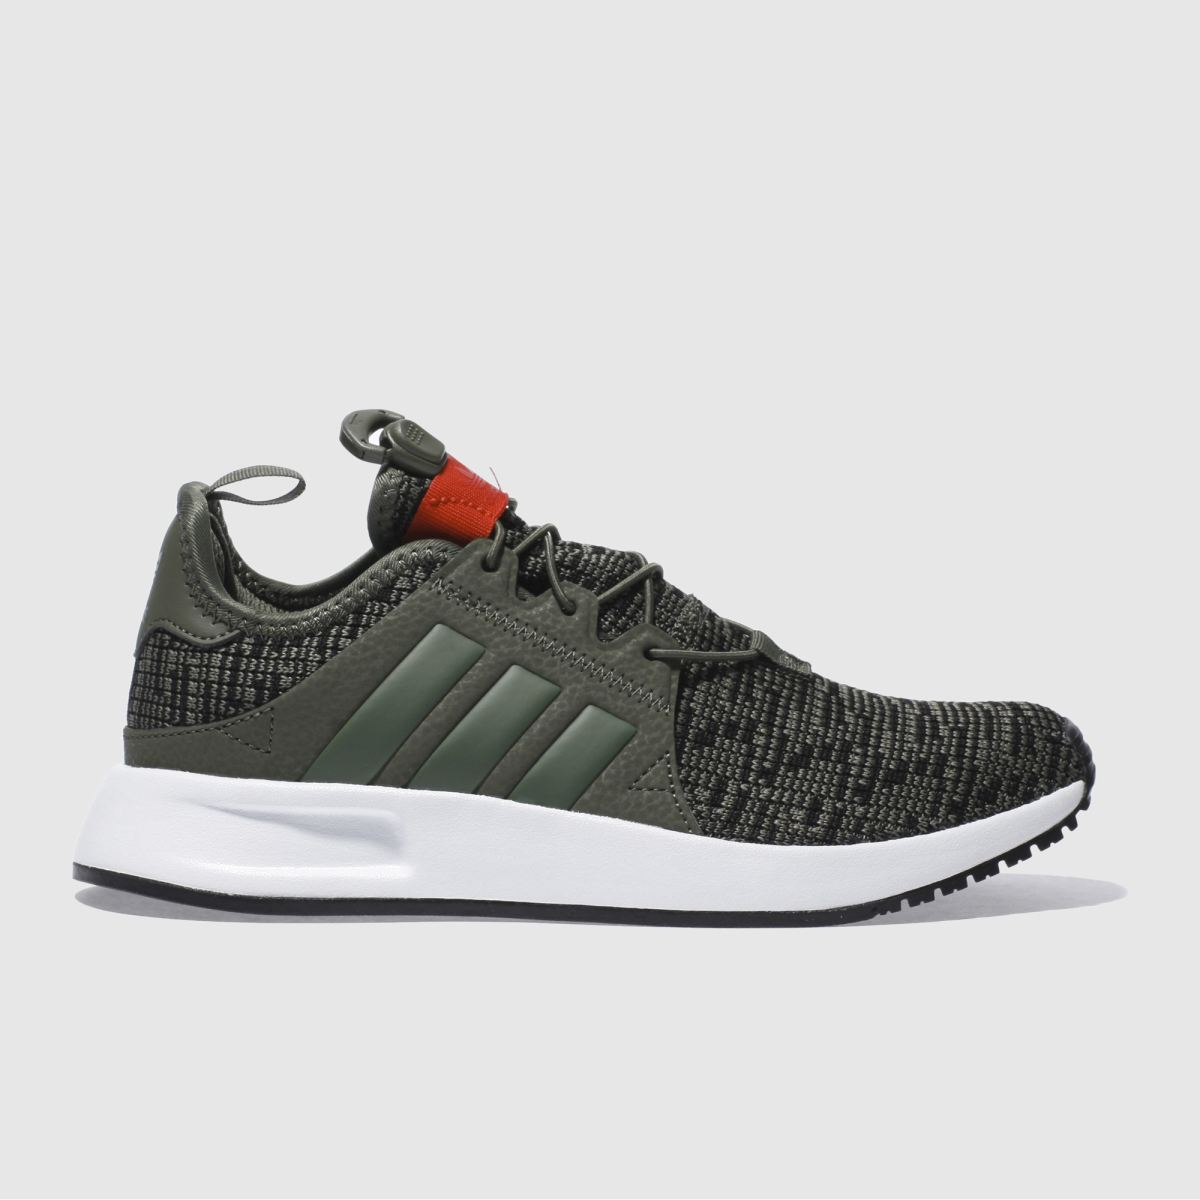 adidas khaki x_plr Youth Trainers